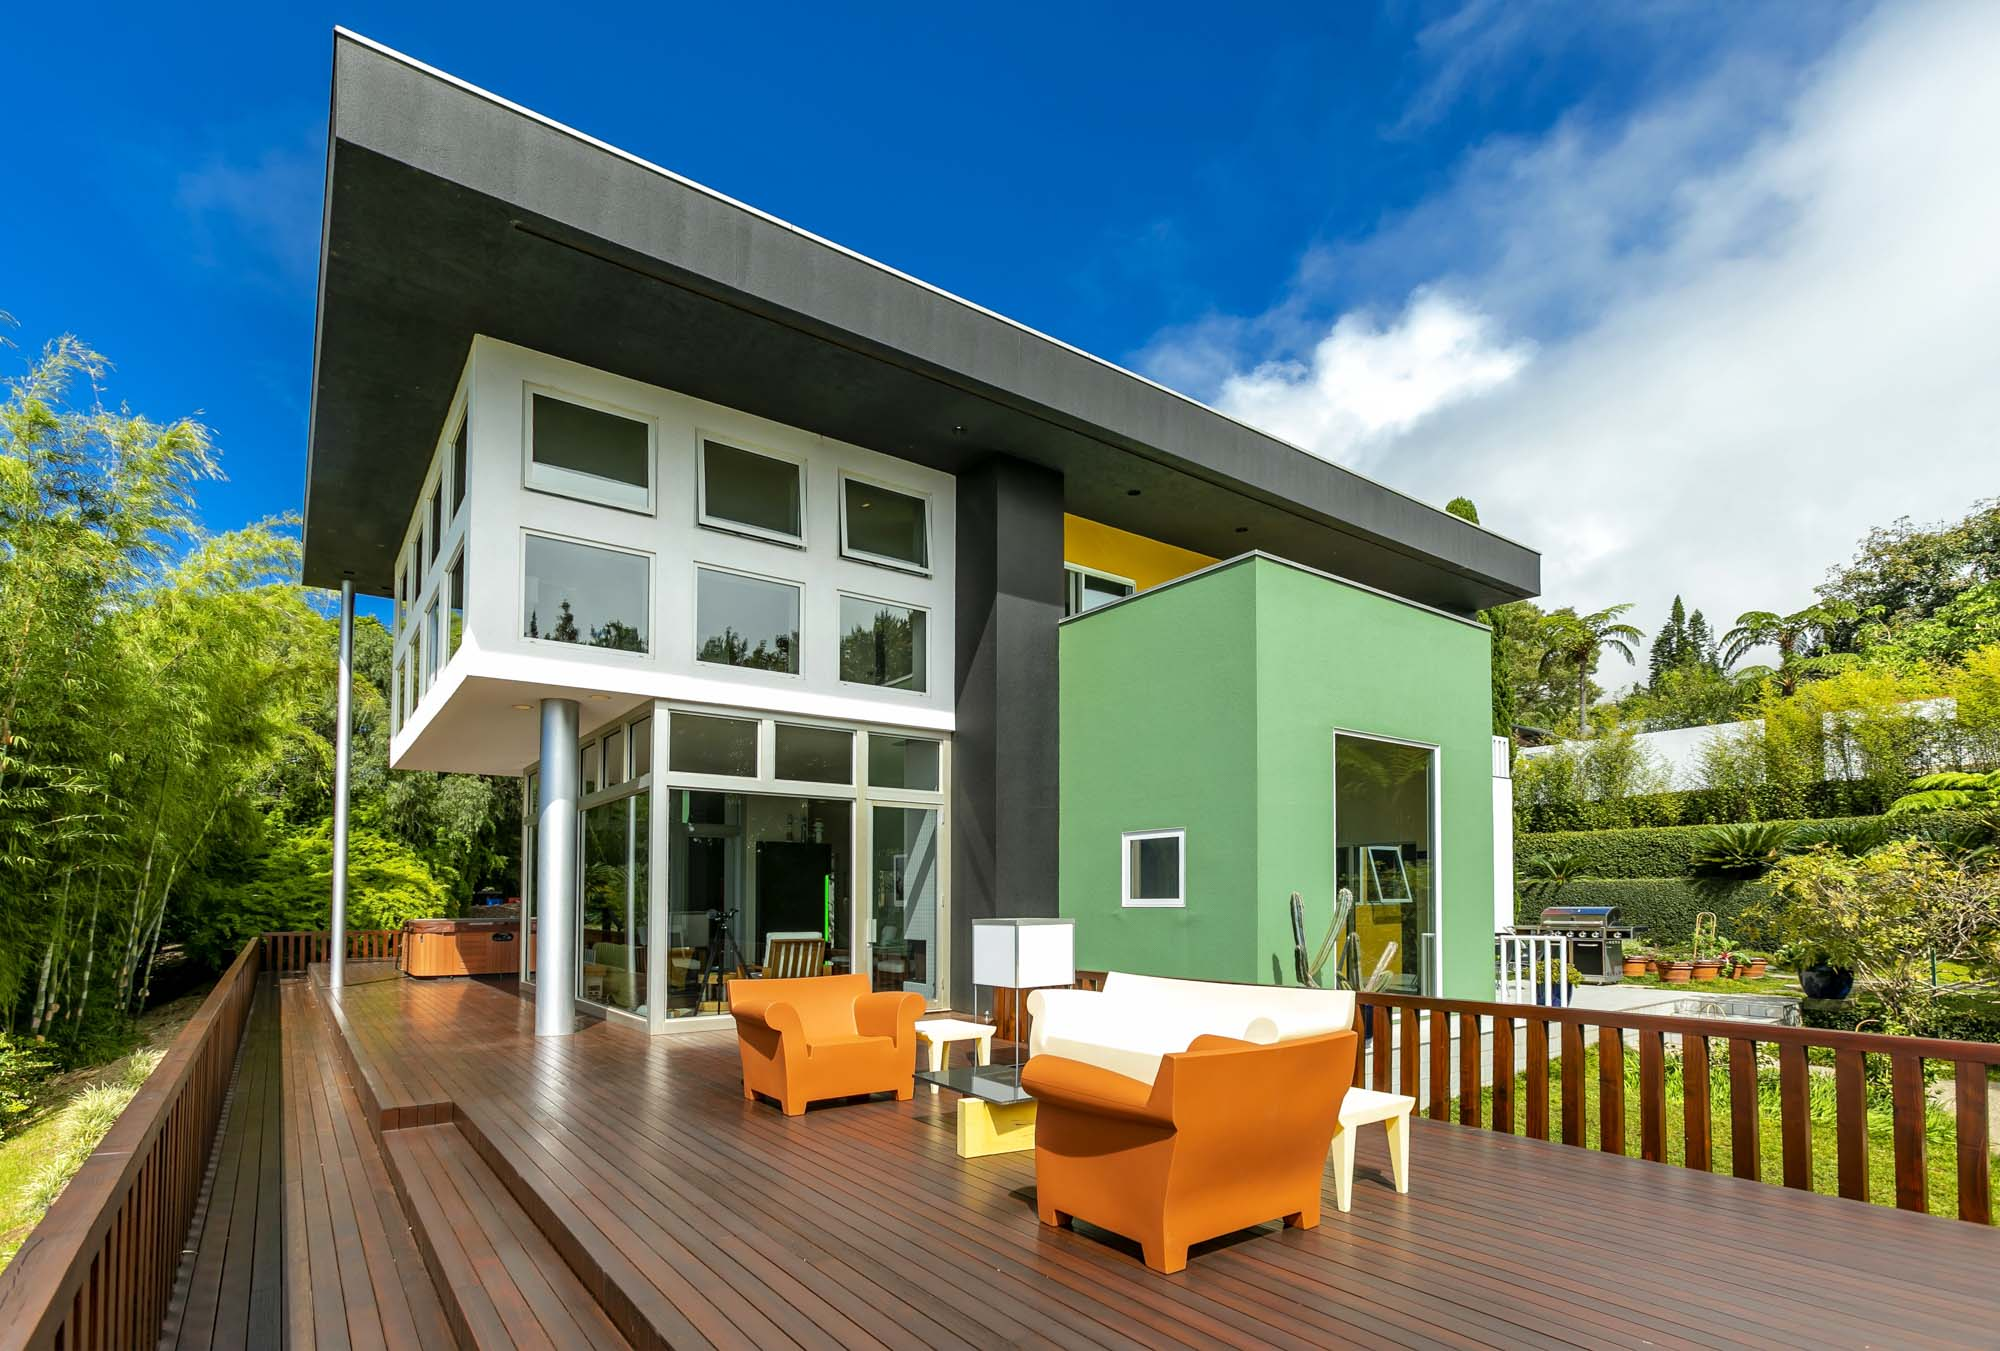 A $9.8 Million Maui Home Is Memphis Design Icon - Bloomberg  Home Designer Architectural Icon on maintenance icons, books icons, lifestyle icons, mechanical icons, geotechnical icons, contemporary icons, astrological icons, consulting icons, square business icons, victorian icons, drafting icons, interior icons, nature icons, automation icons, technical icons, urban design icons, general icons, corporate icons, cultural icons, political icons,